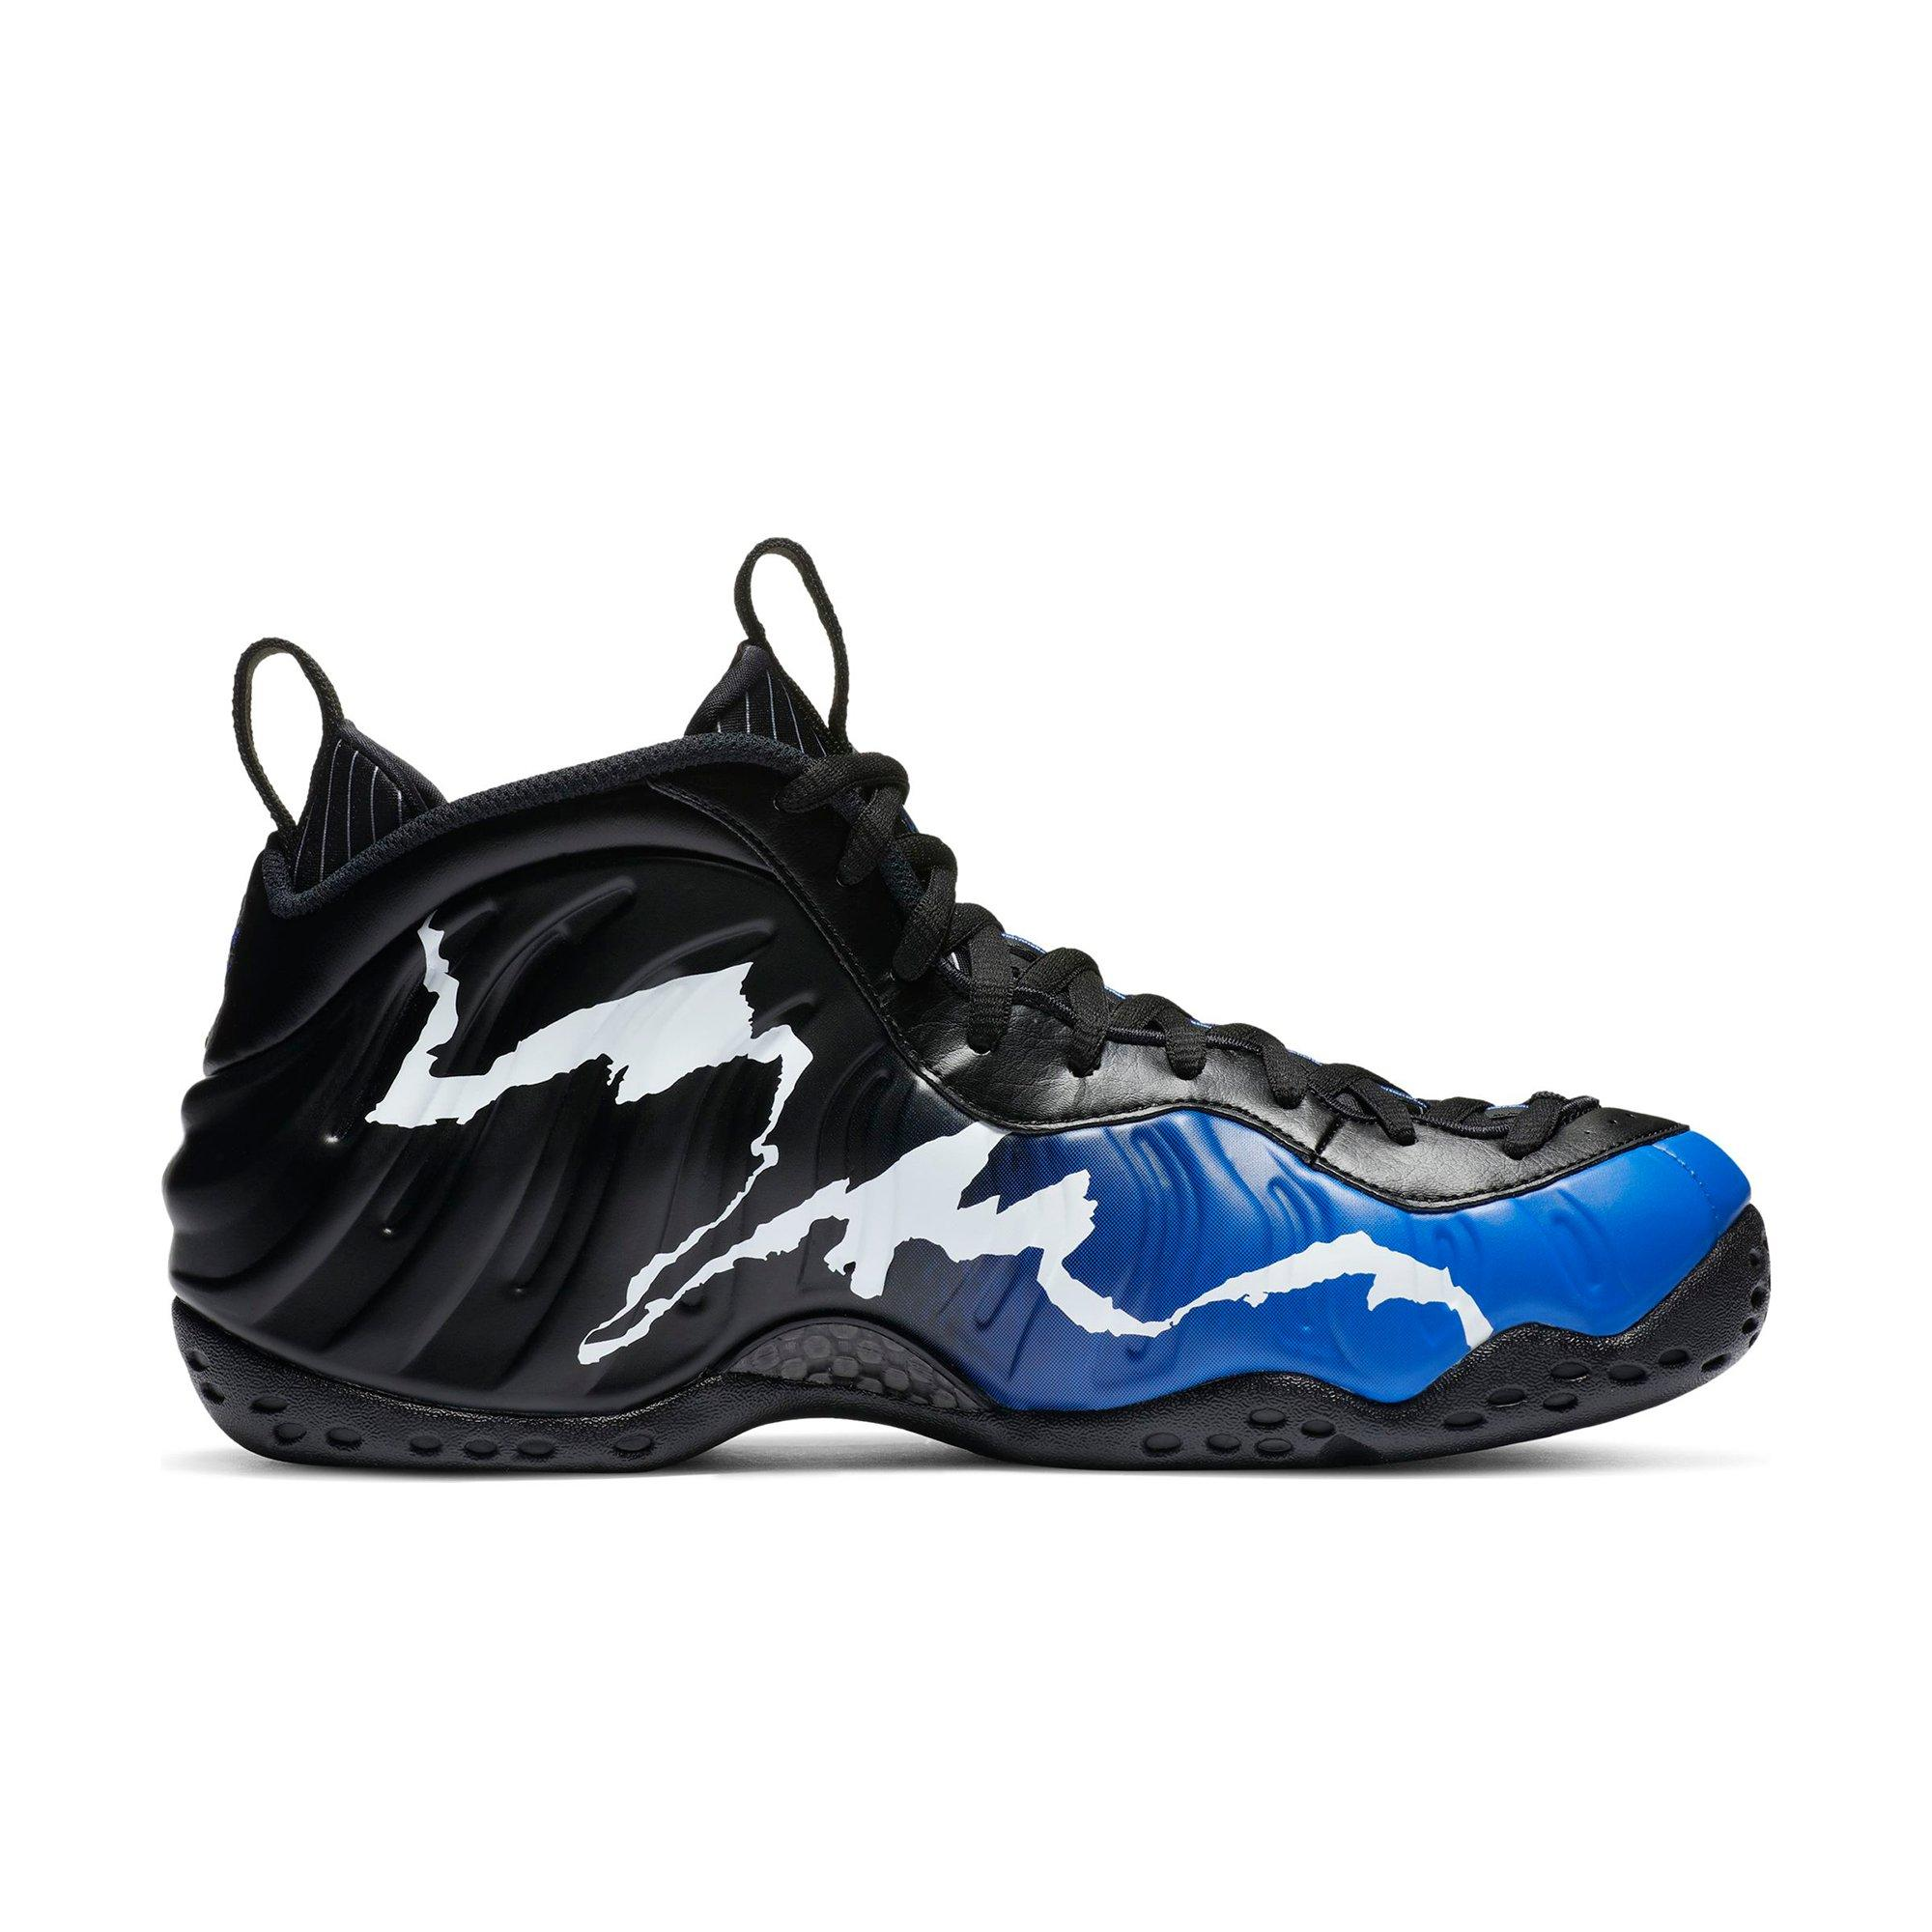 Nike Air Foamposite One Men s Basketball Shoes Rust Pink ...